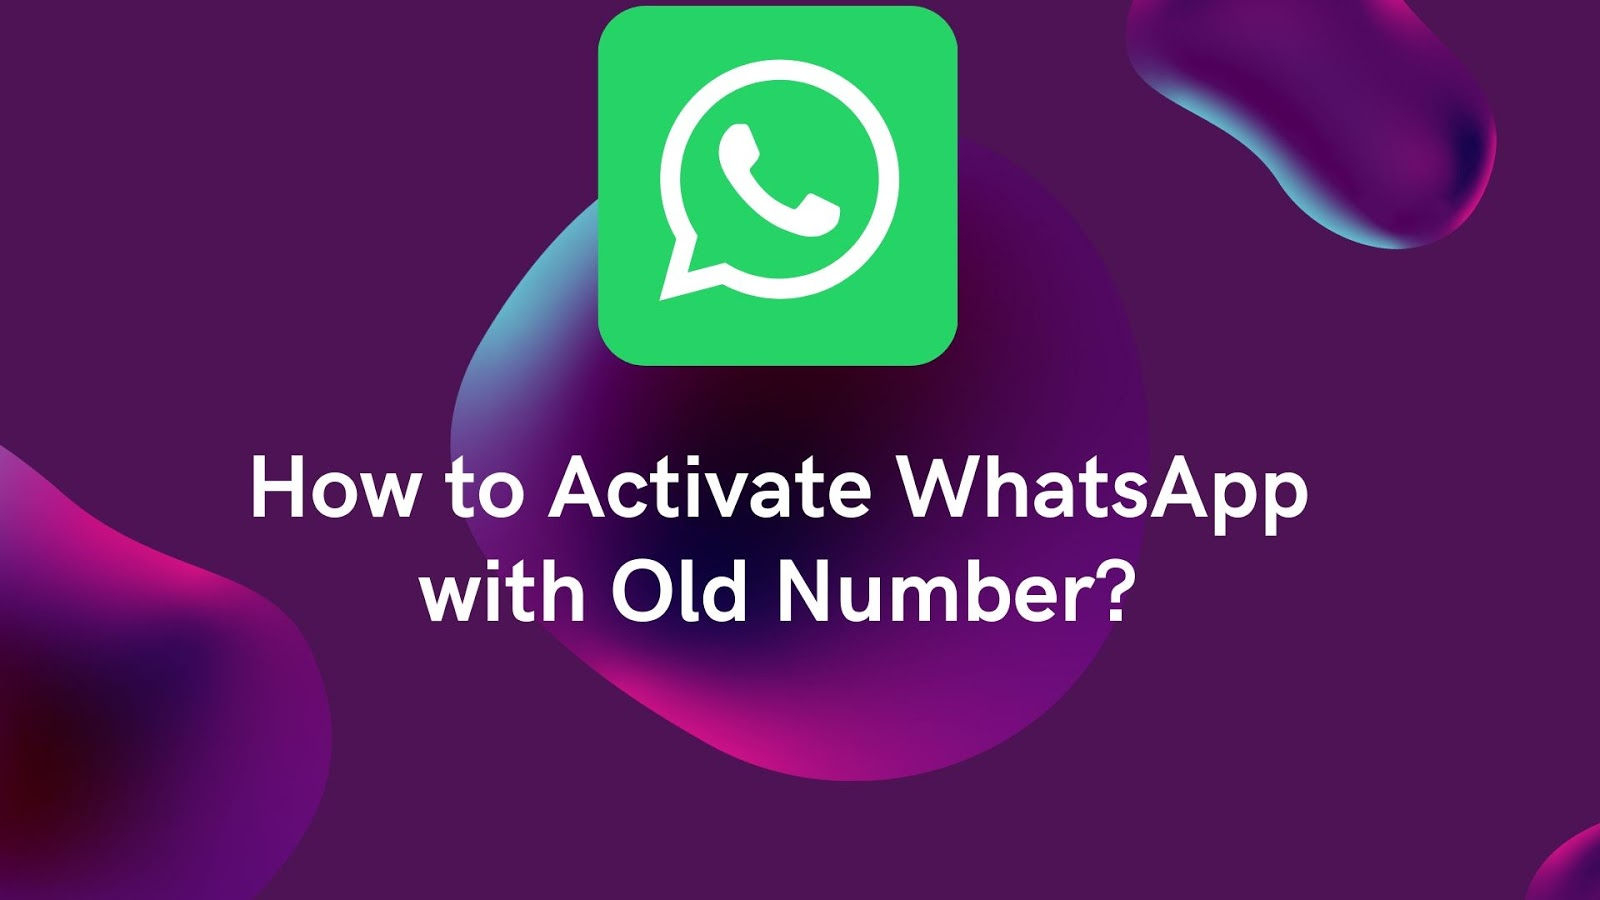 Activate WhatsApp with Old Number